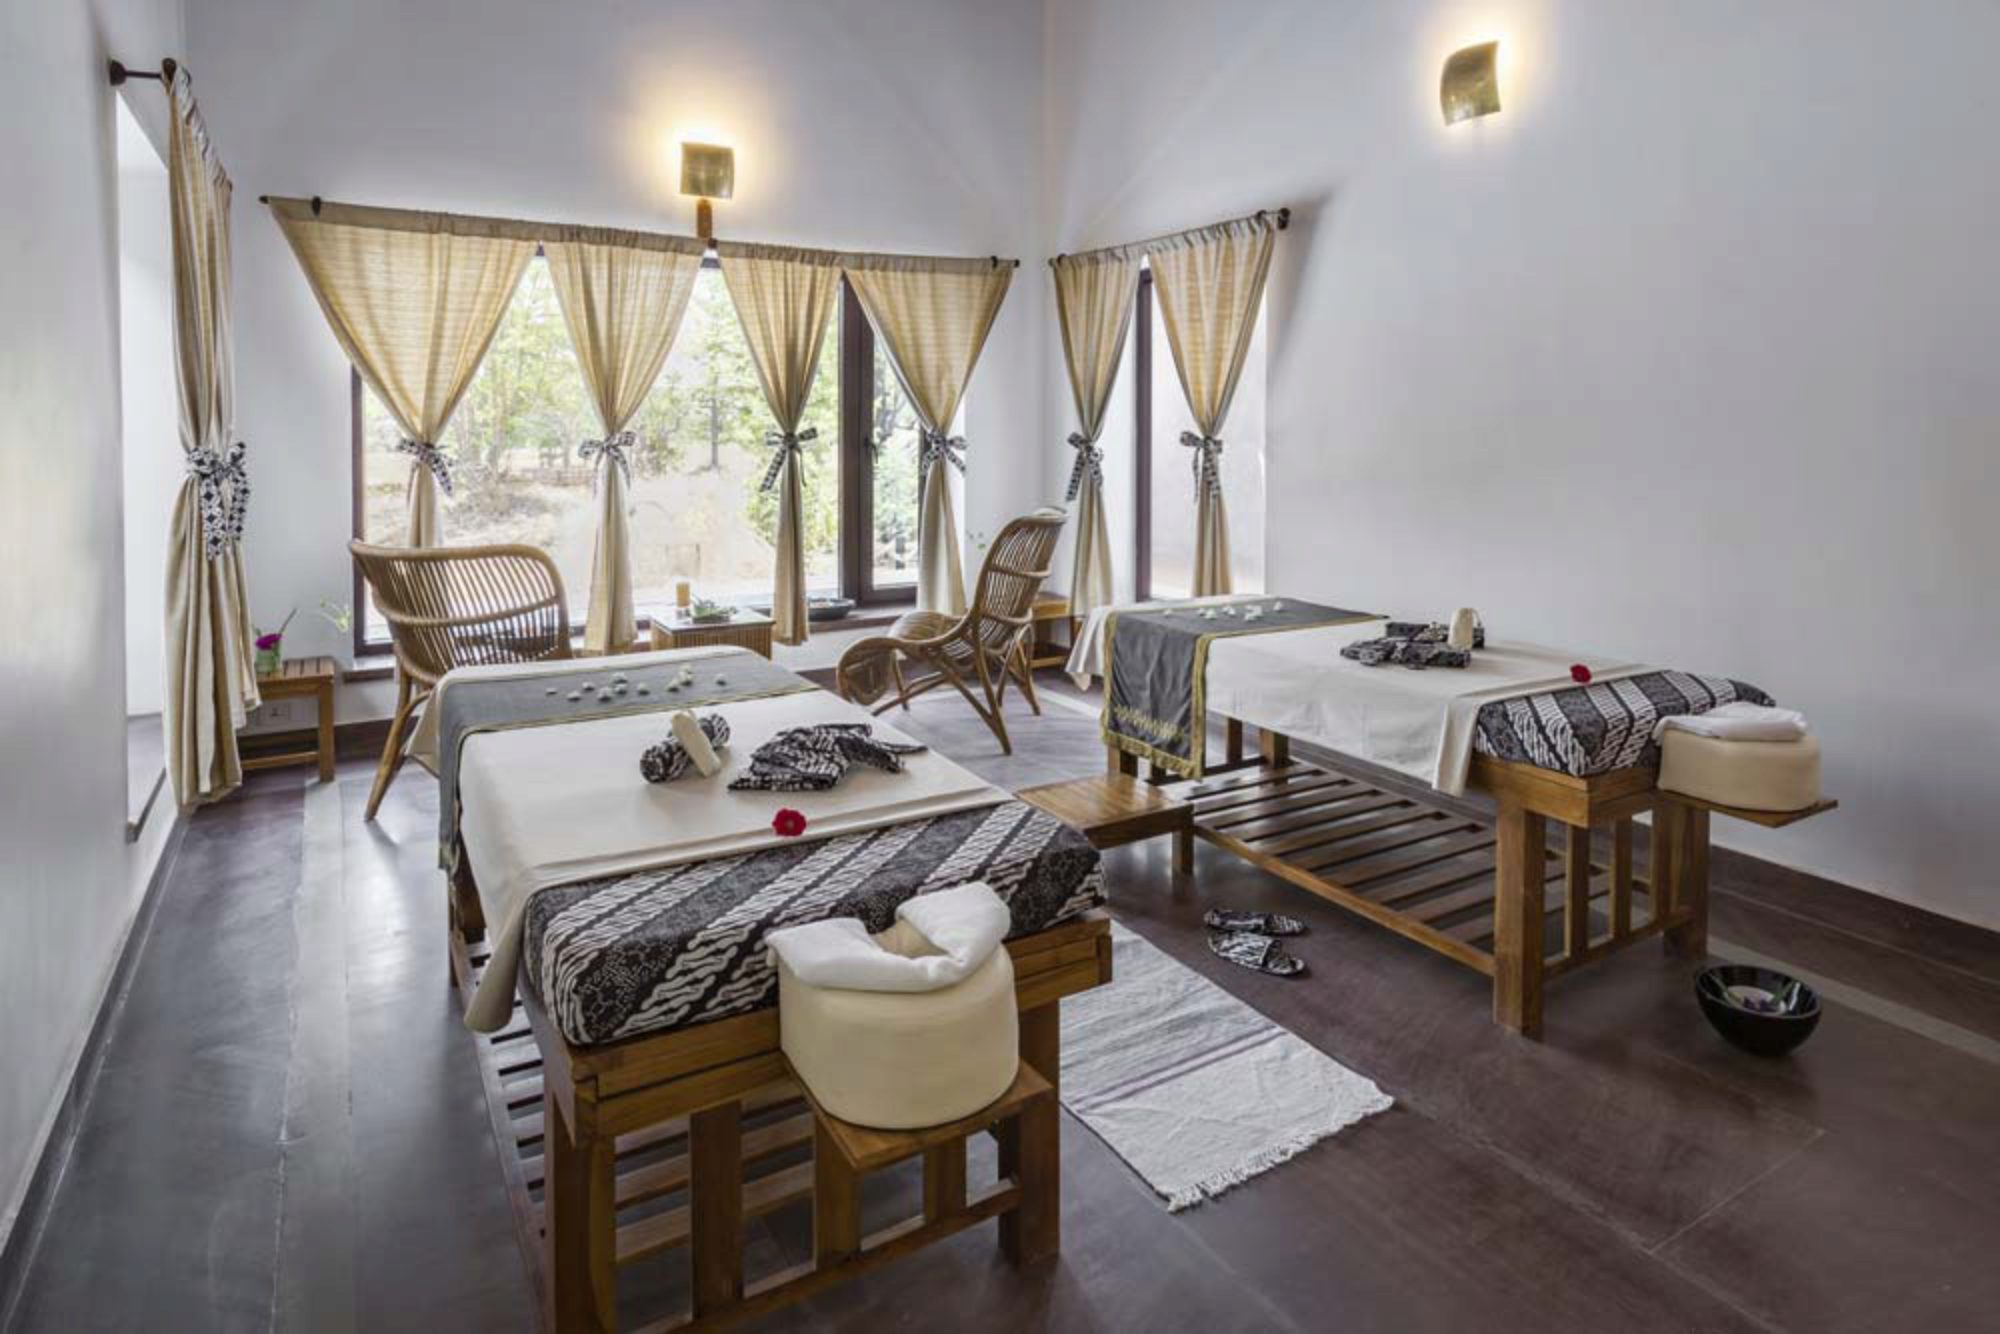 Accommodation at Kanha National Park Resorts